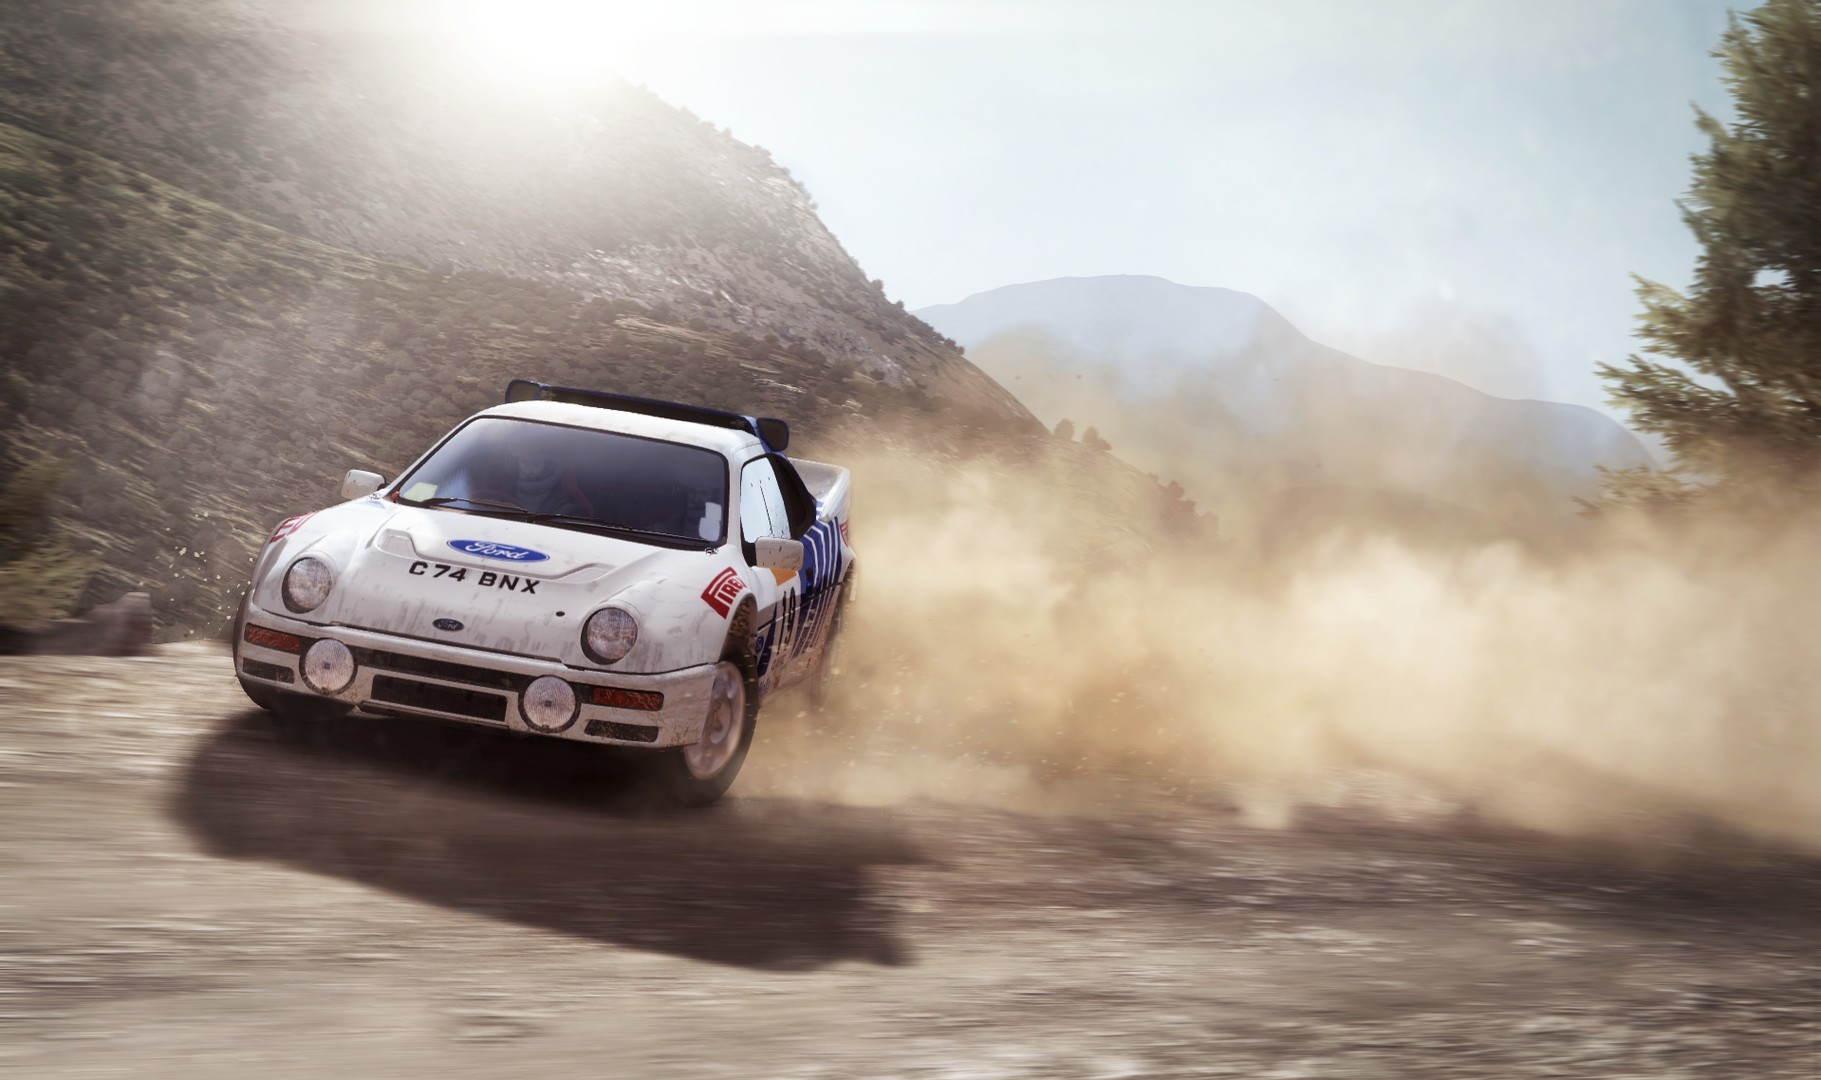 DiRT Rally Greece first look gameplay: where is the sense of speed?